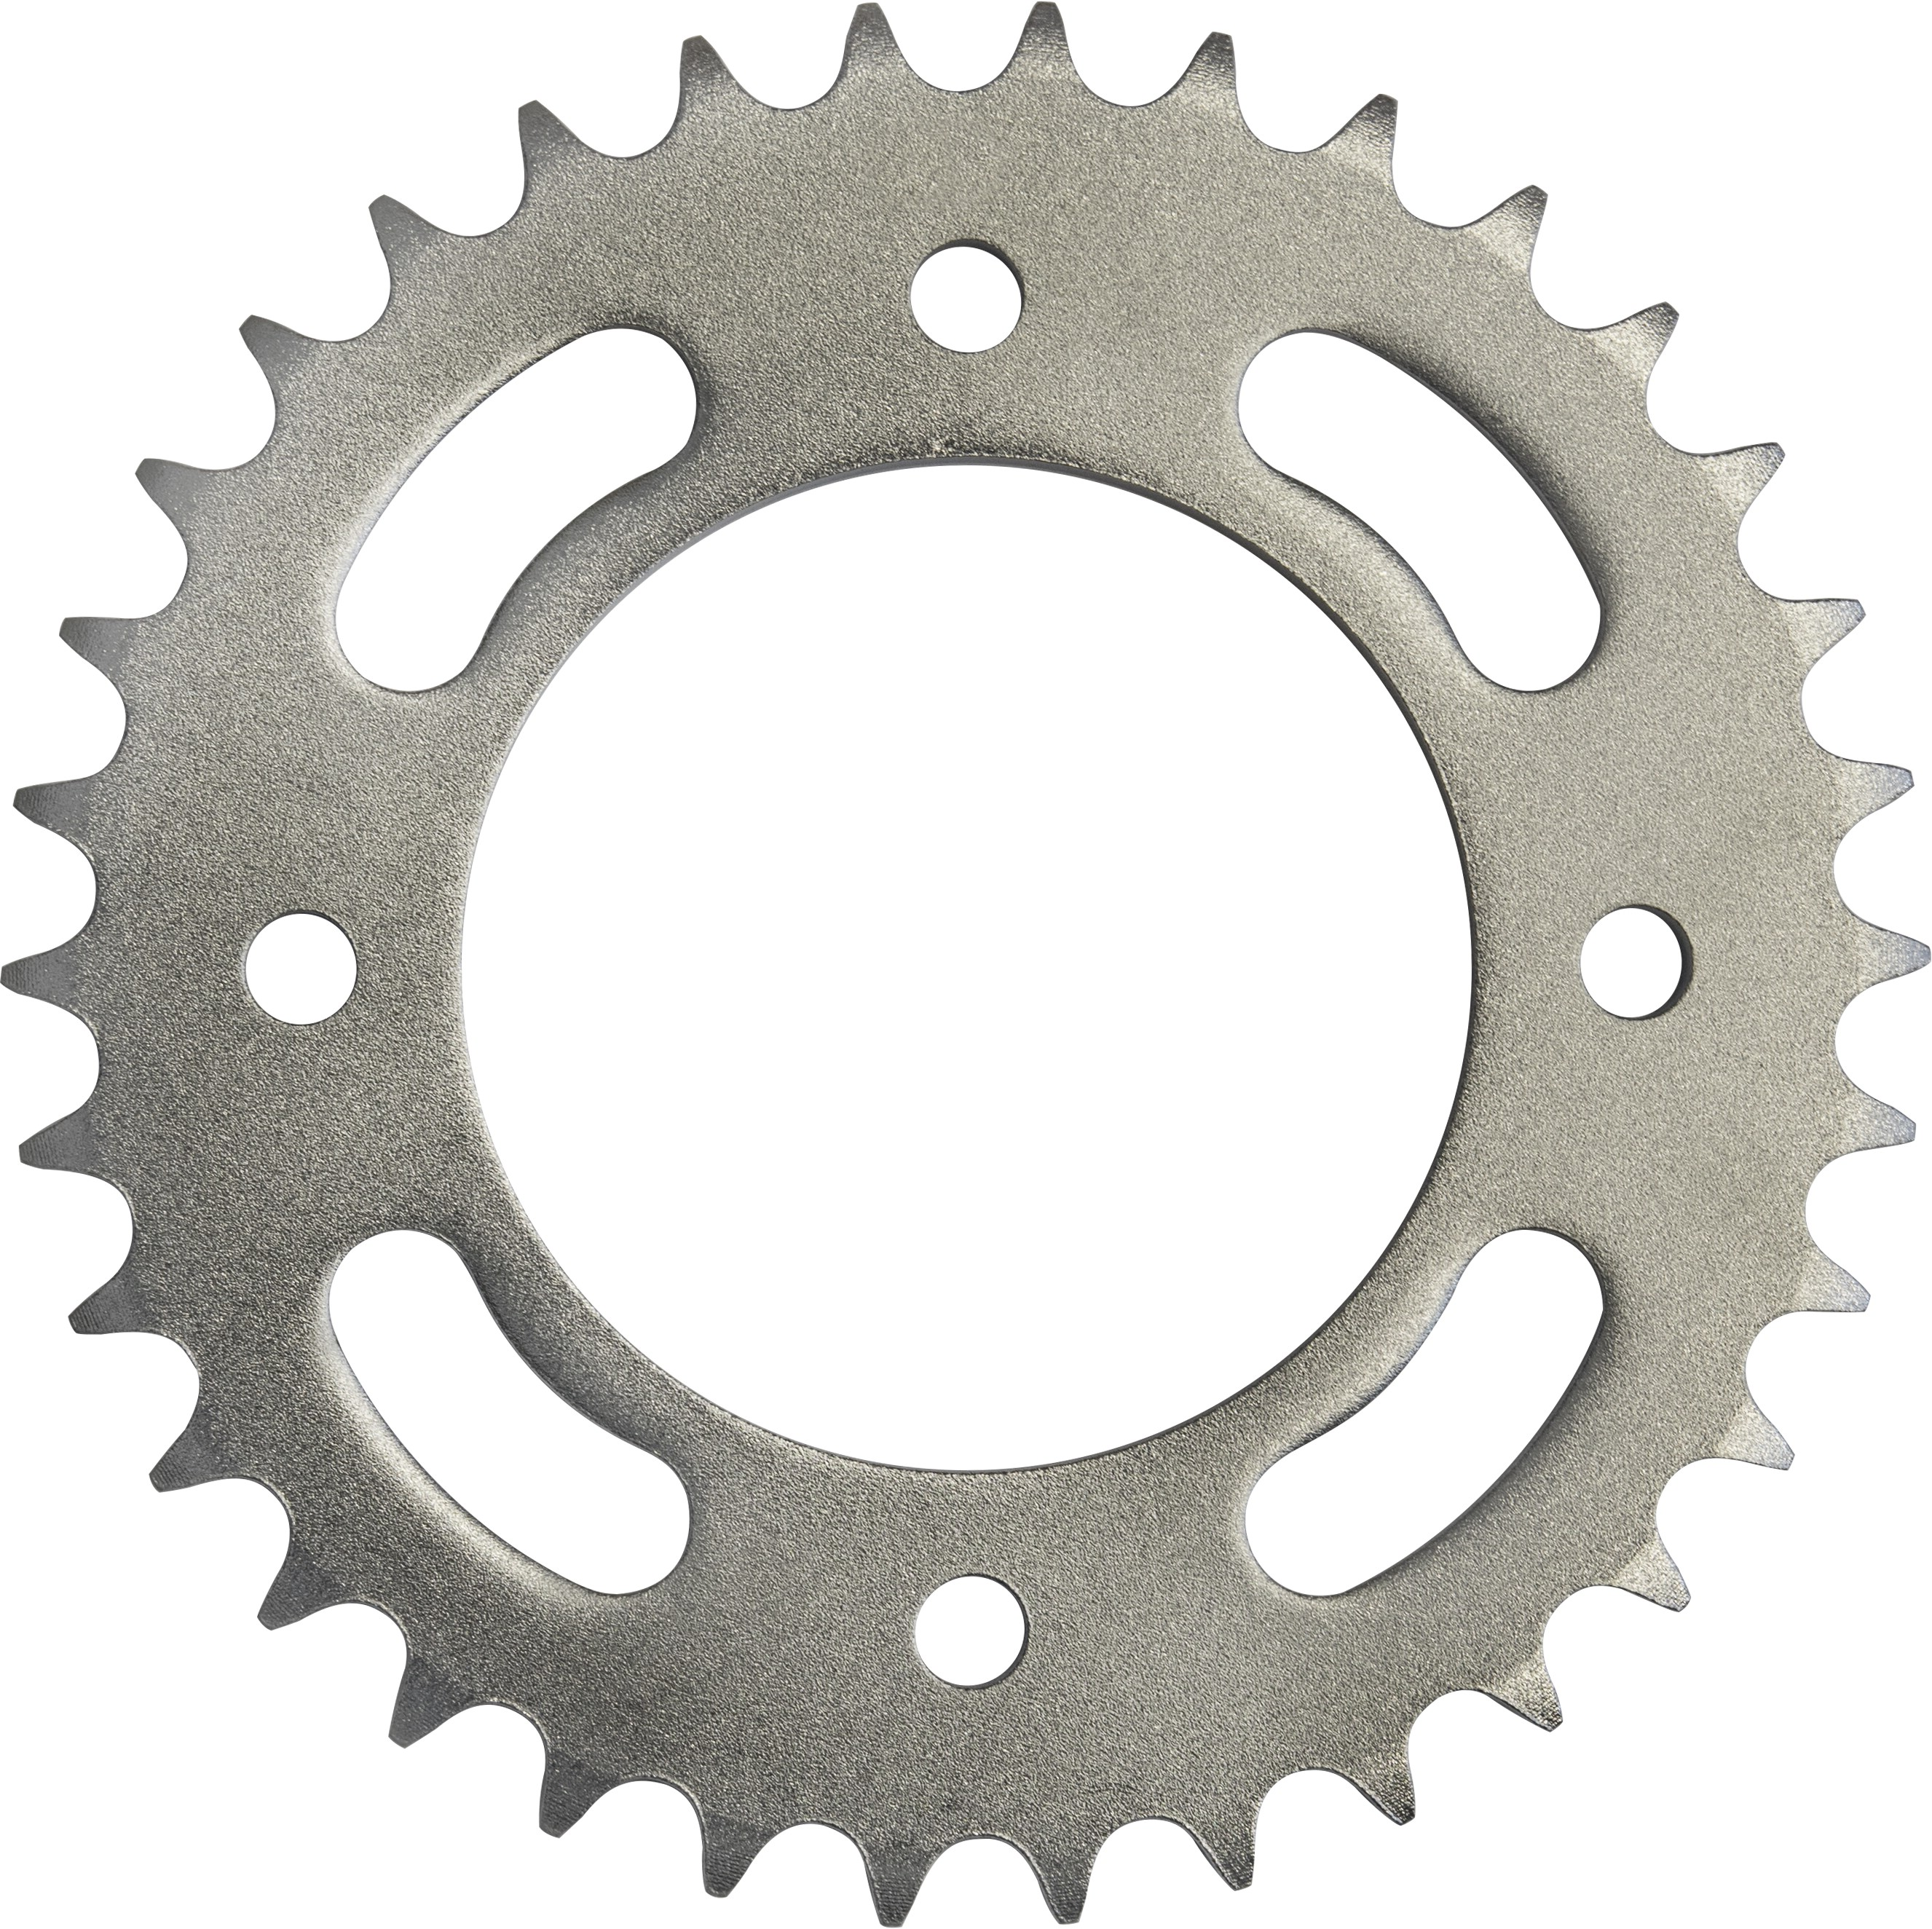 282-35 REAR SPROCKET HONDA CB500T, CB550K, CB550F 1971-1981 ALTERNATIVE